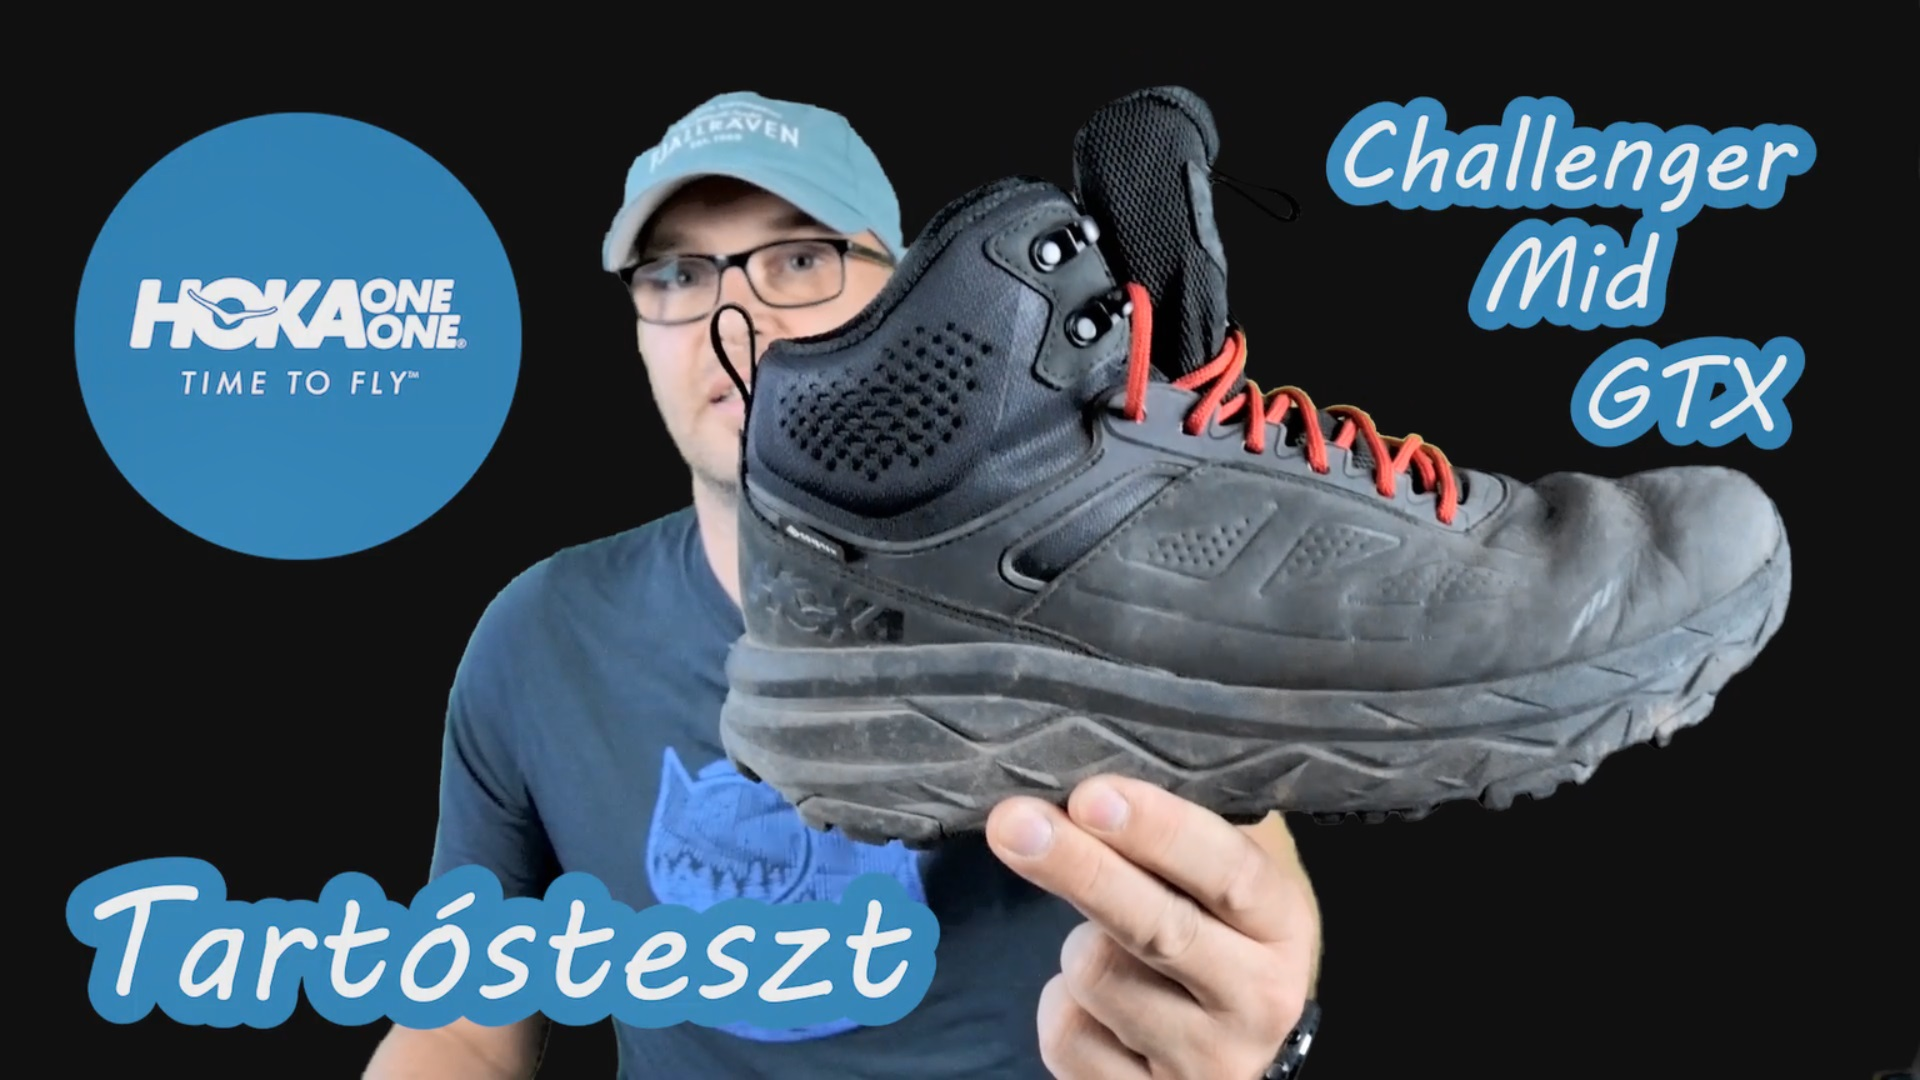 hoka_one_one_challenger_gtx_mid_teszt_yt_cover_video.jpg